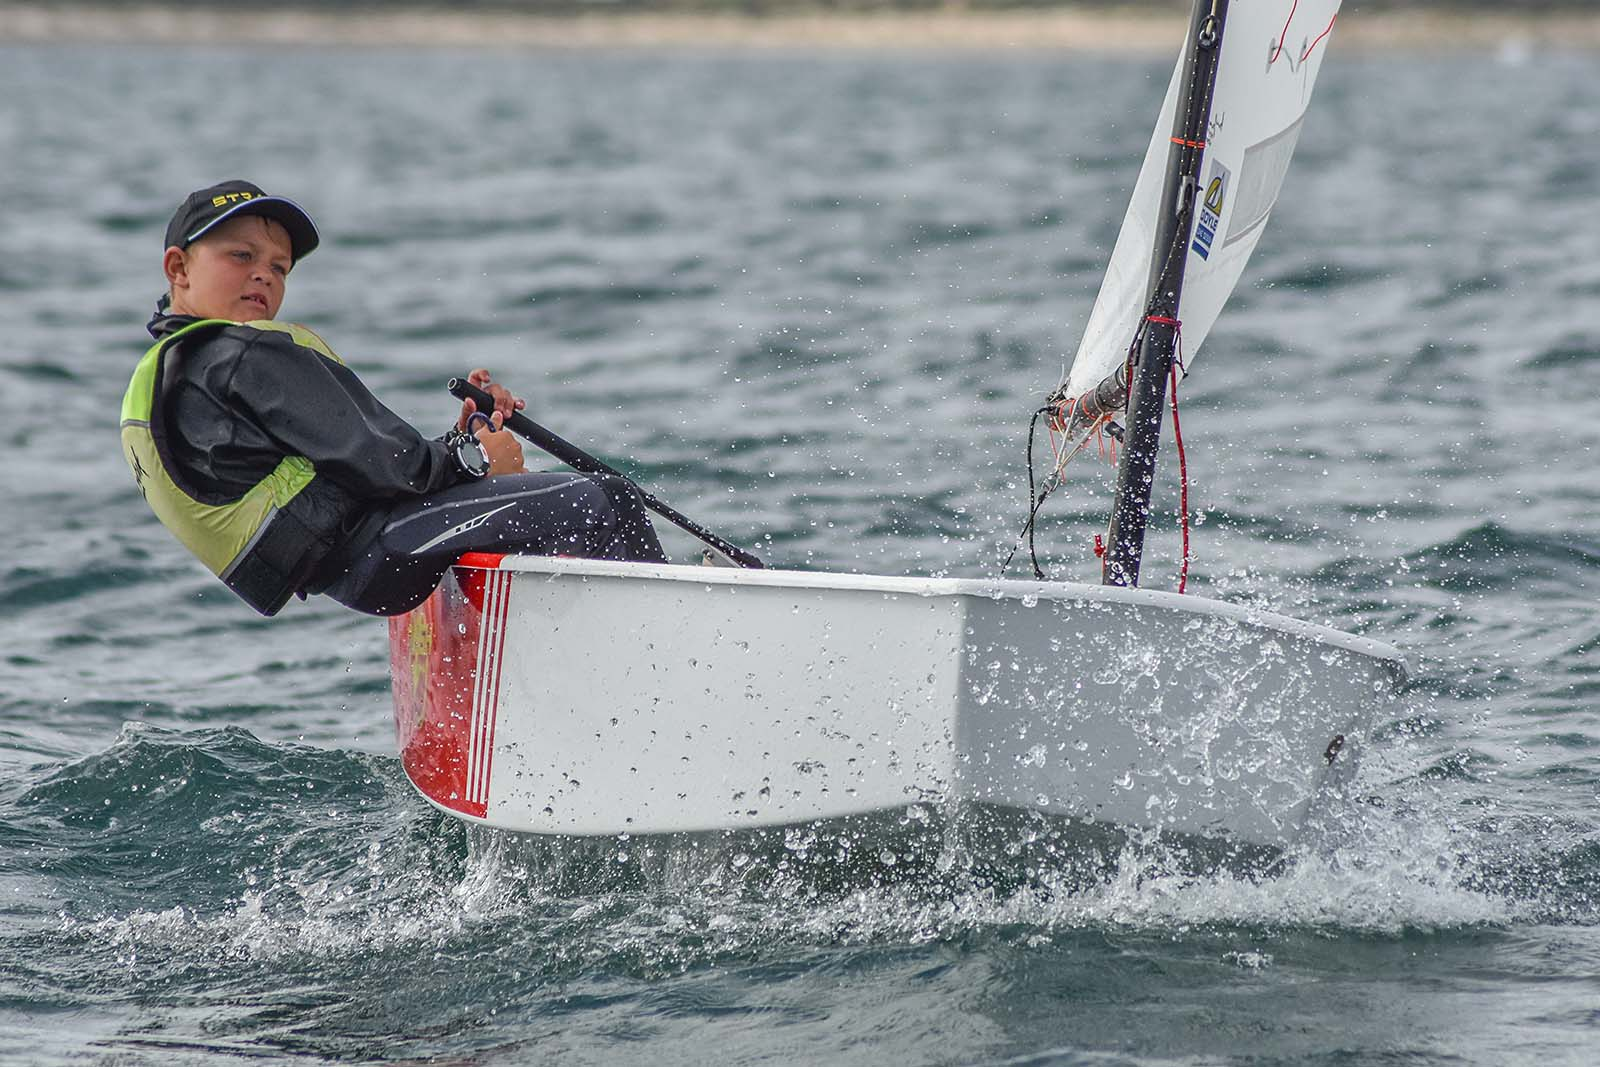 Murphy Cowen finished fourth overall in the Intermediate Fleet.